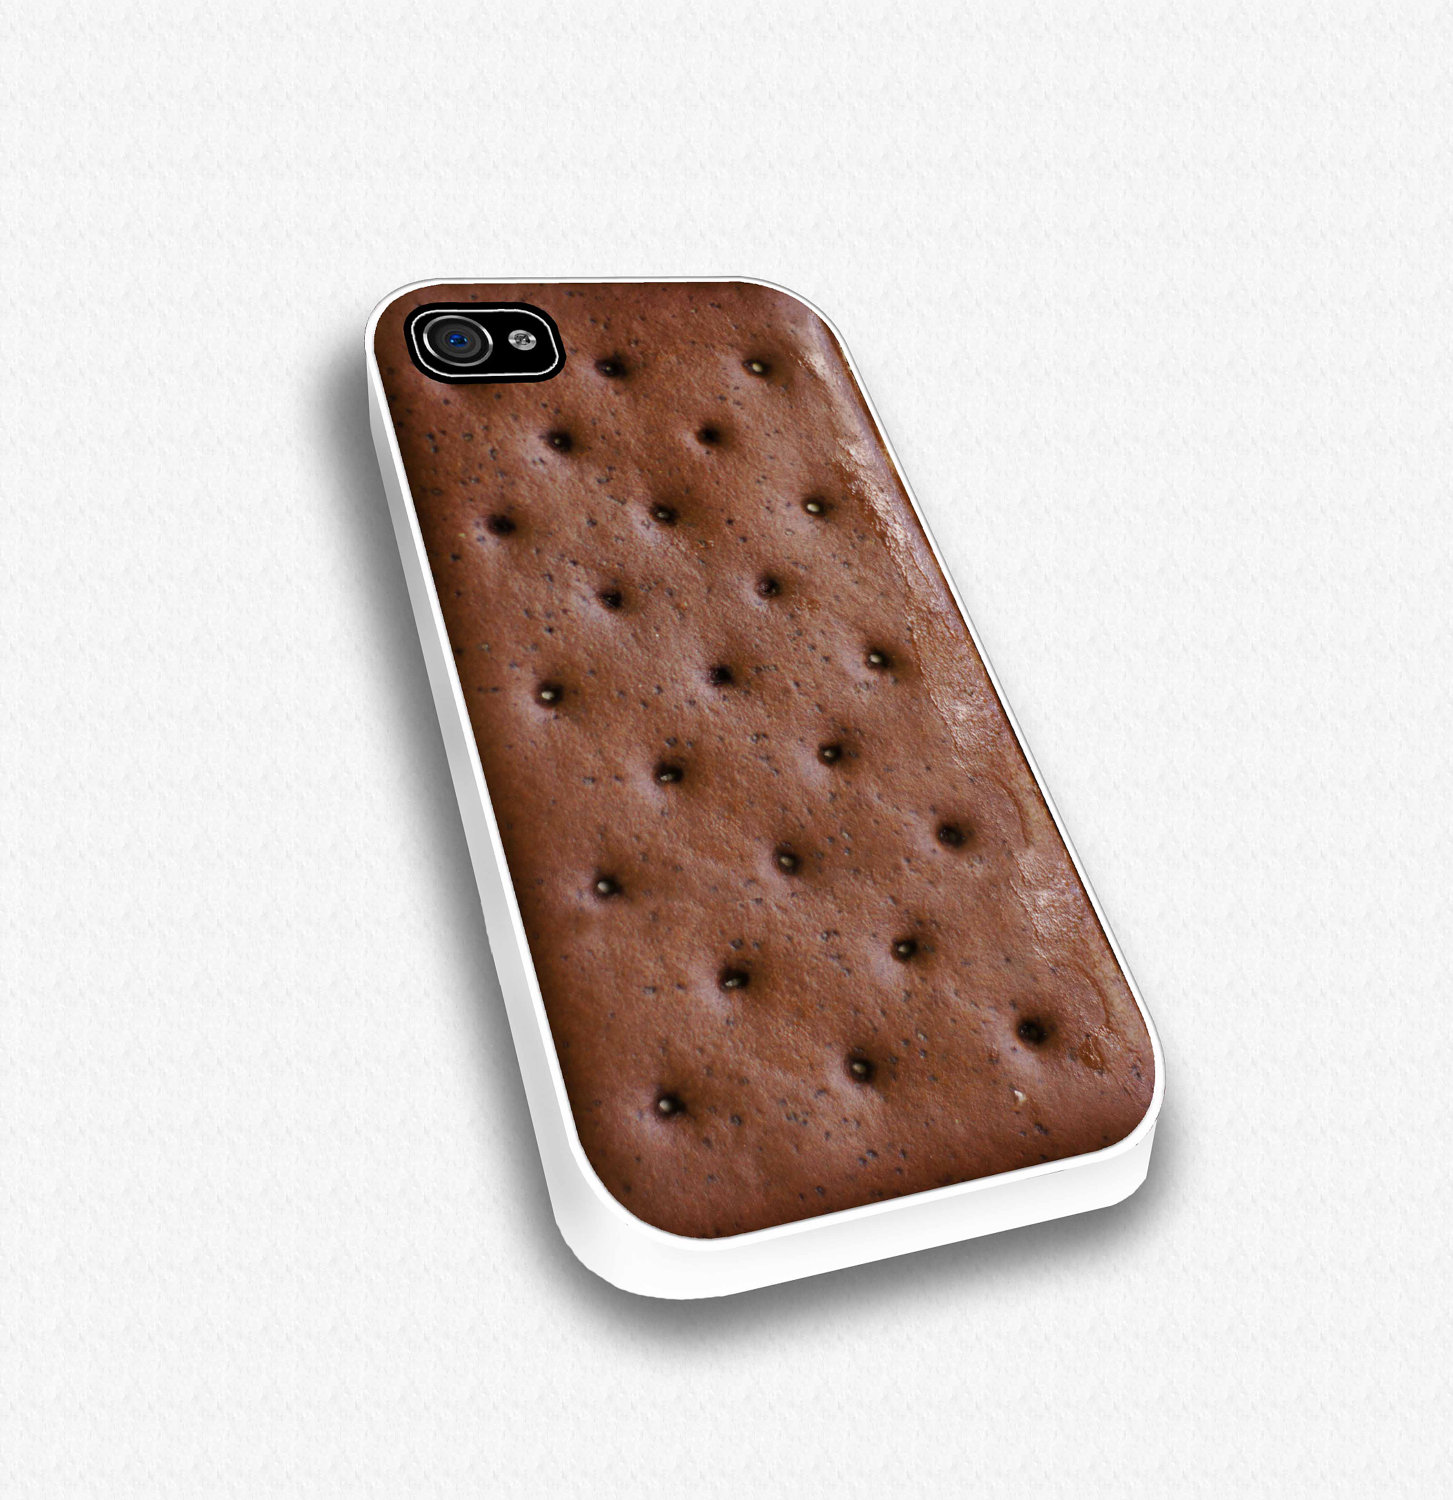 Favorite-iphone-cases-for-brides-modern-tech-weddings-ice-cream-sandwich.original